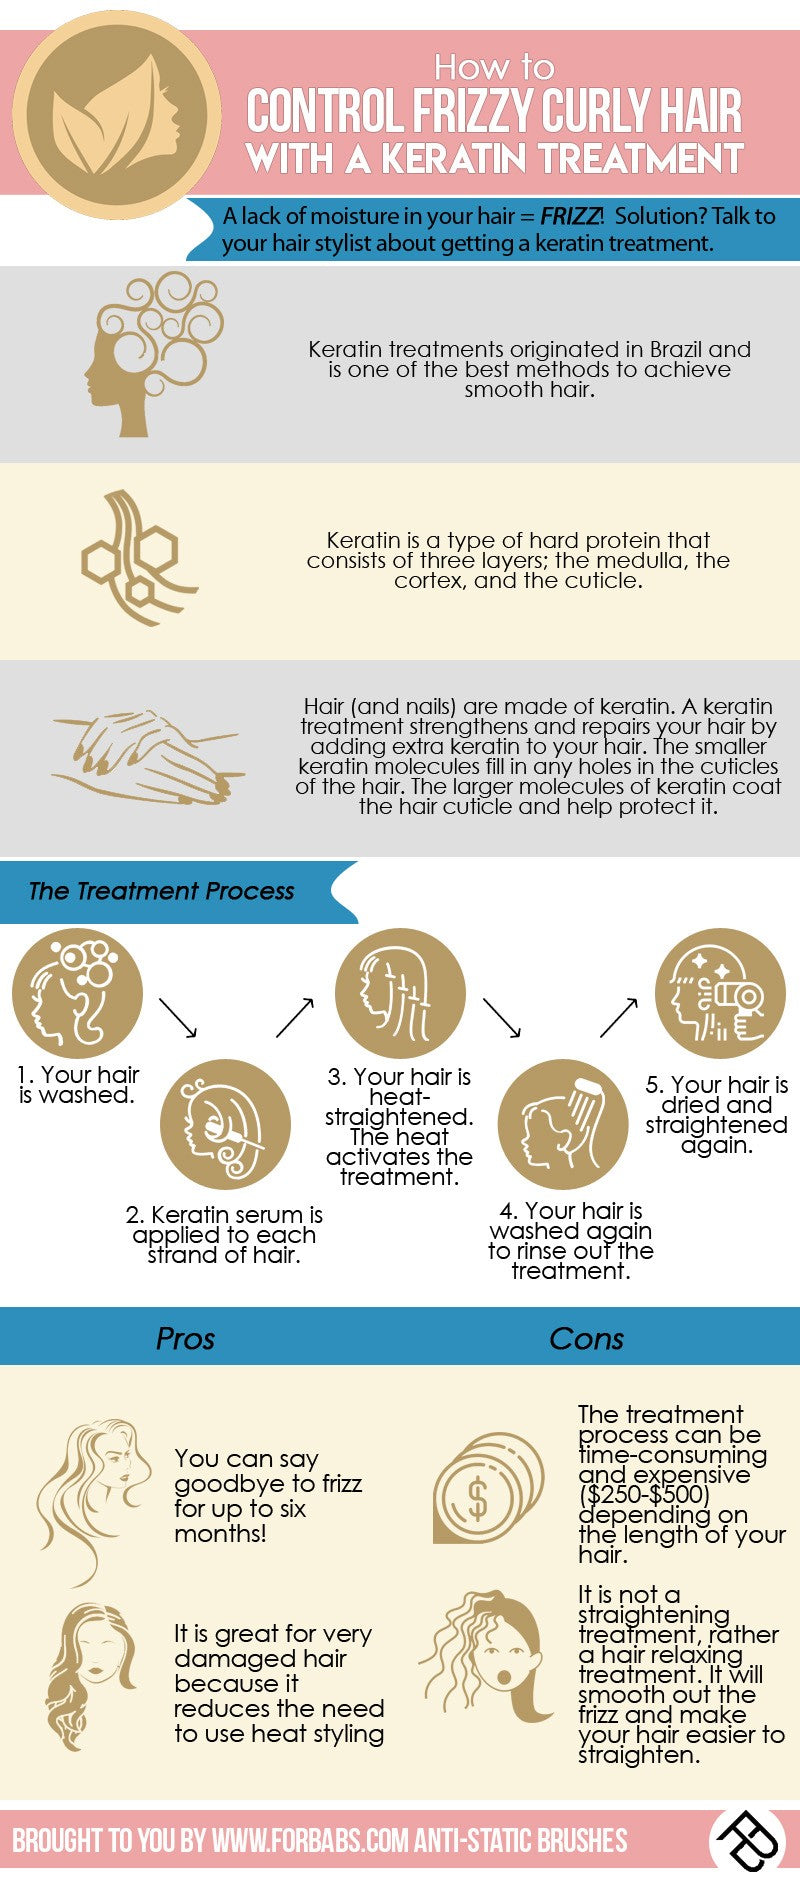 How to Control Frizzy Curly Hair Infographic